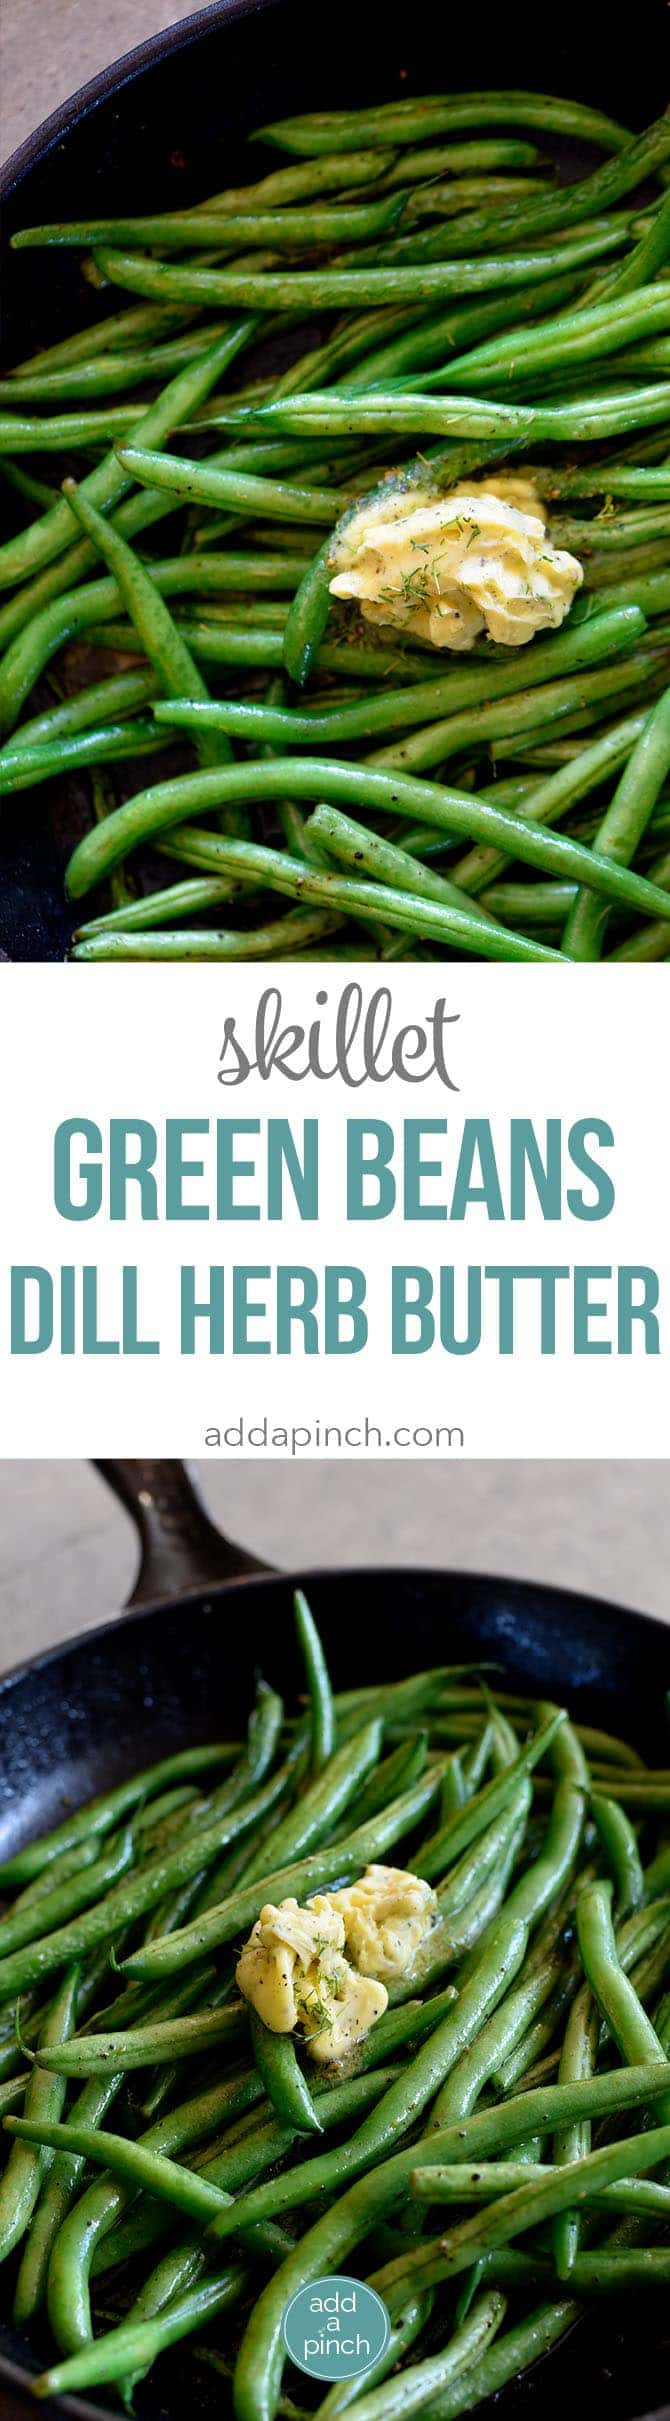 Skillet Green Beans with Dill Herbed Butter Recipe - These S..